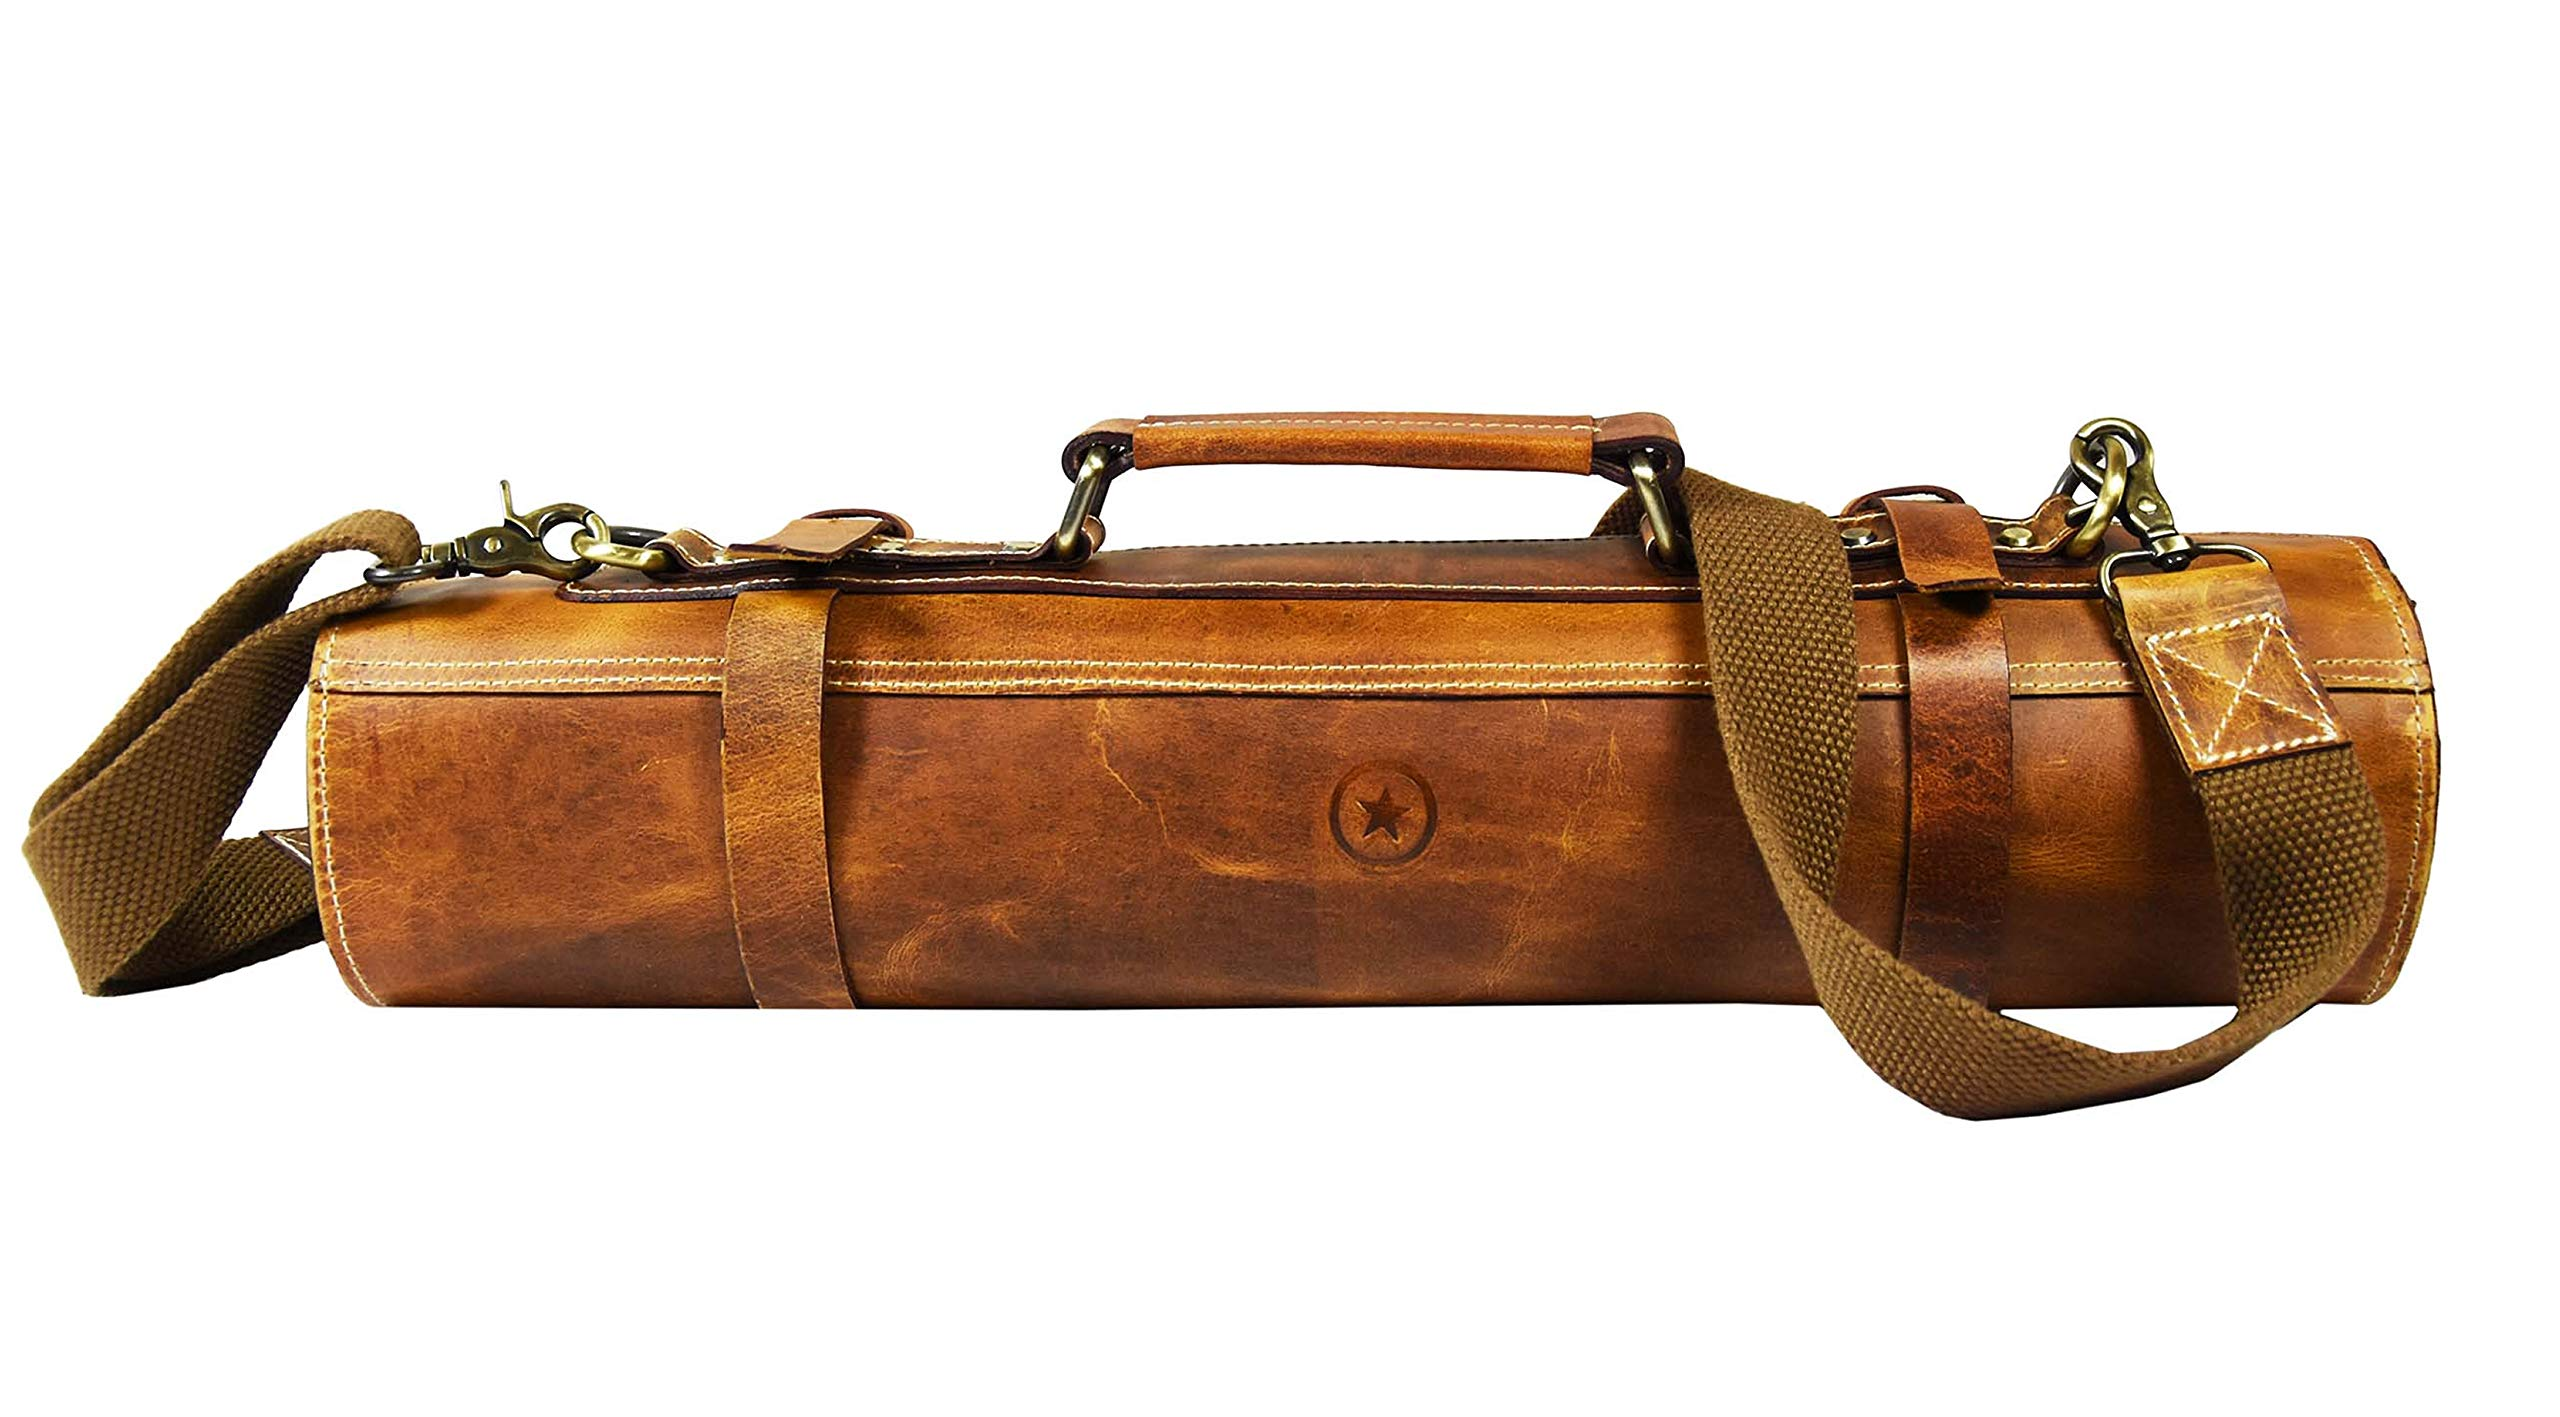 Leather Knife Roll Storage Bag | Elastic and Expandable 10 Pockets | Adjustable/Detachable Shoulder Strap | Travel-Friendly Chef Knife Case Roll By Aaron Leather (Caramel, Leather)